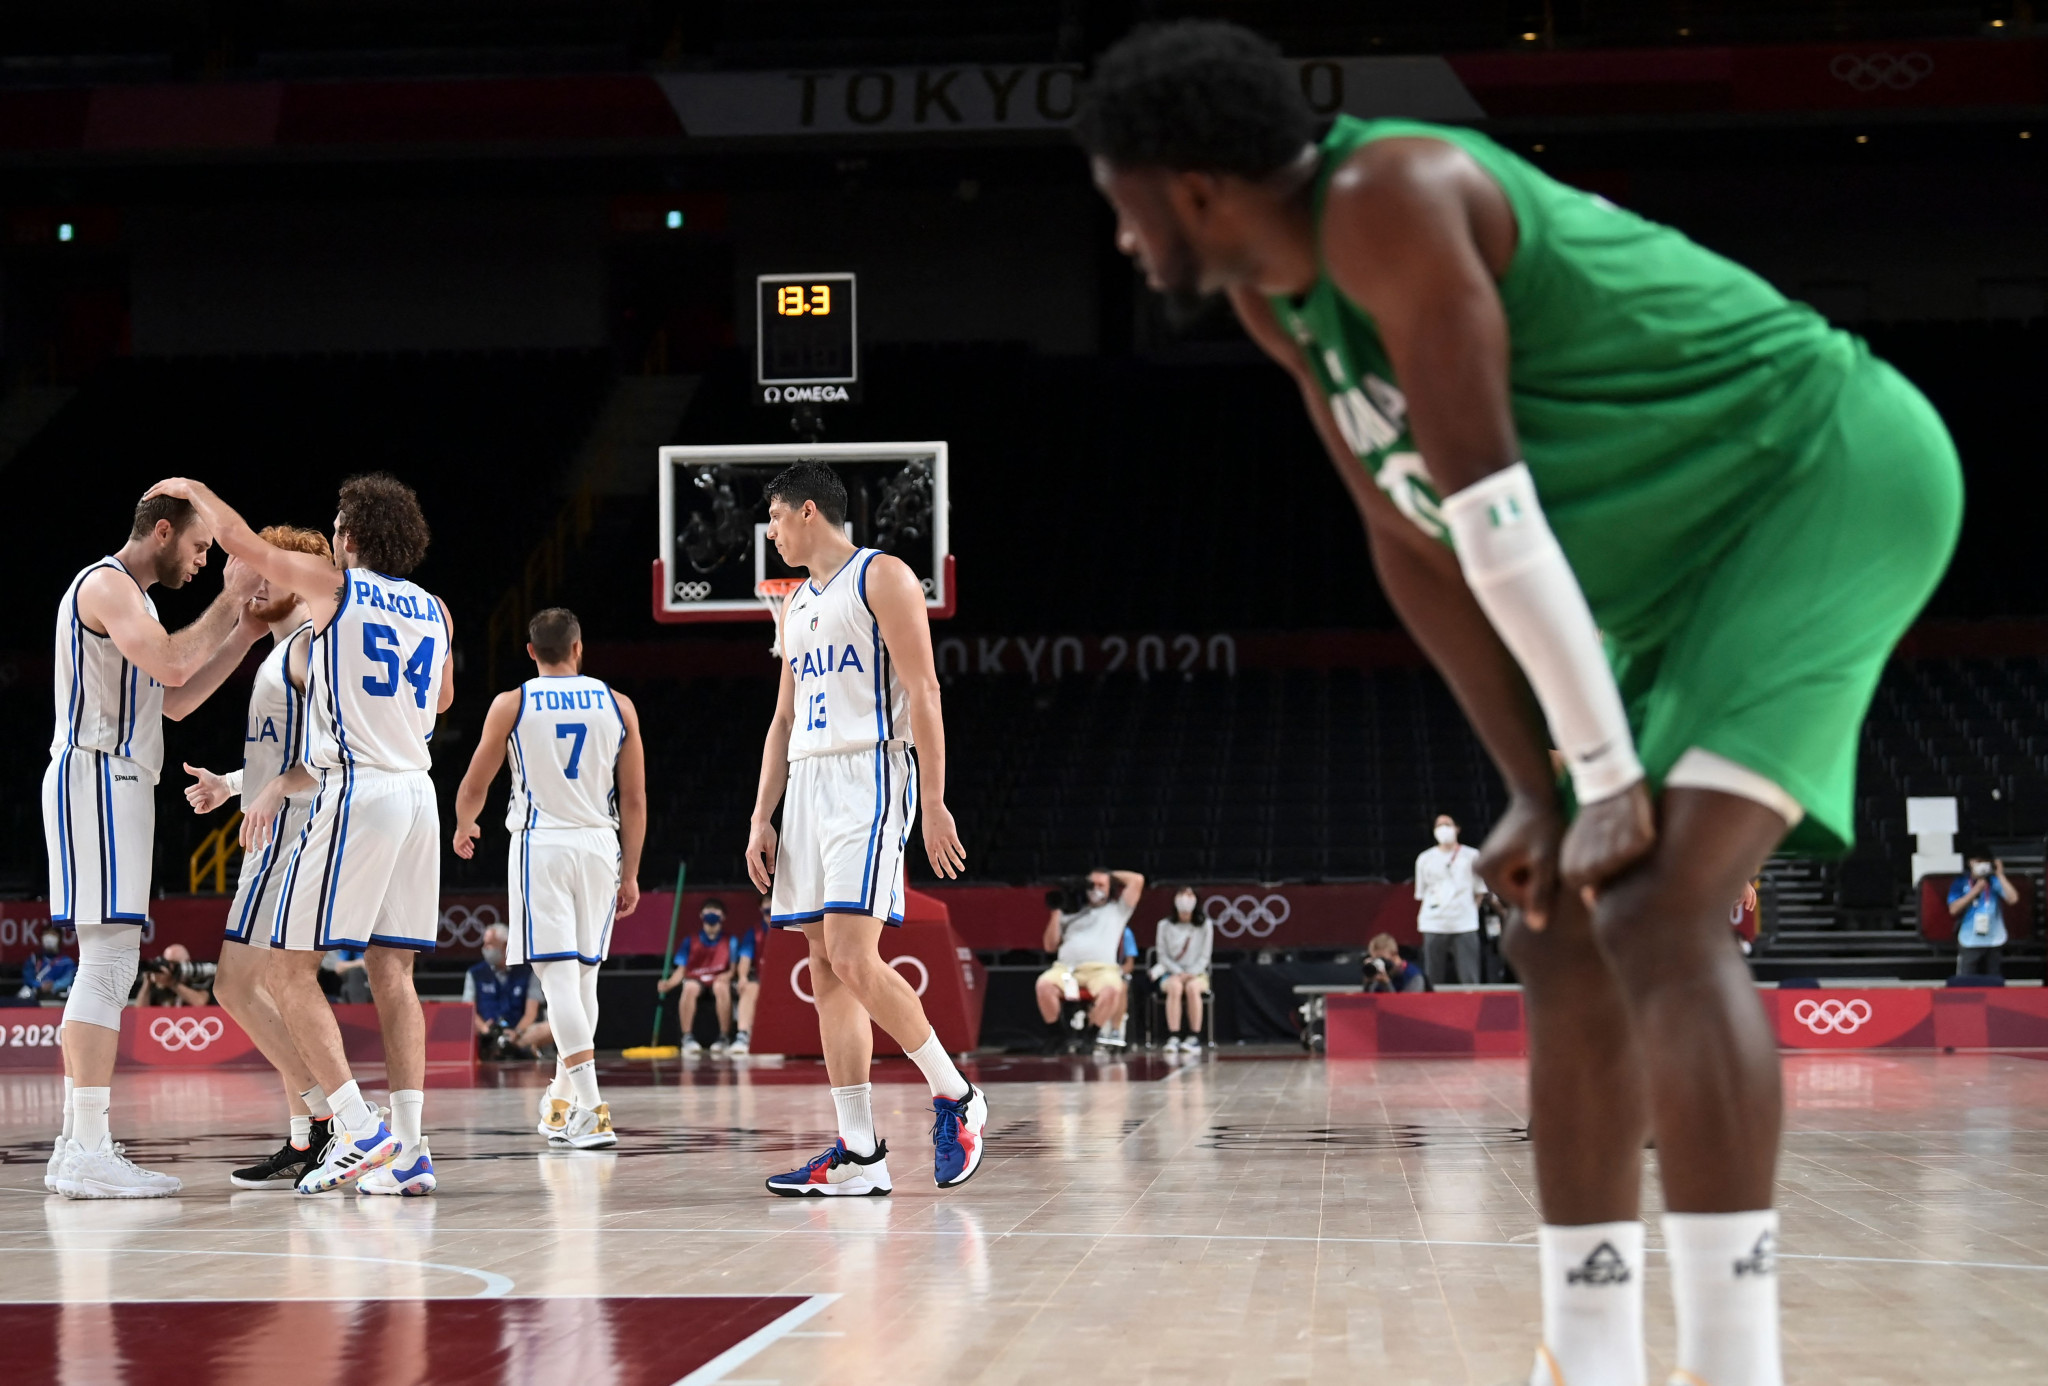 The NBBF has criticised the IOC and NOC, following poor performance at the Olympics and AfroBasket ©Getty Images